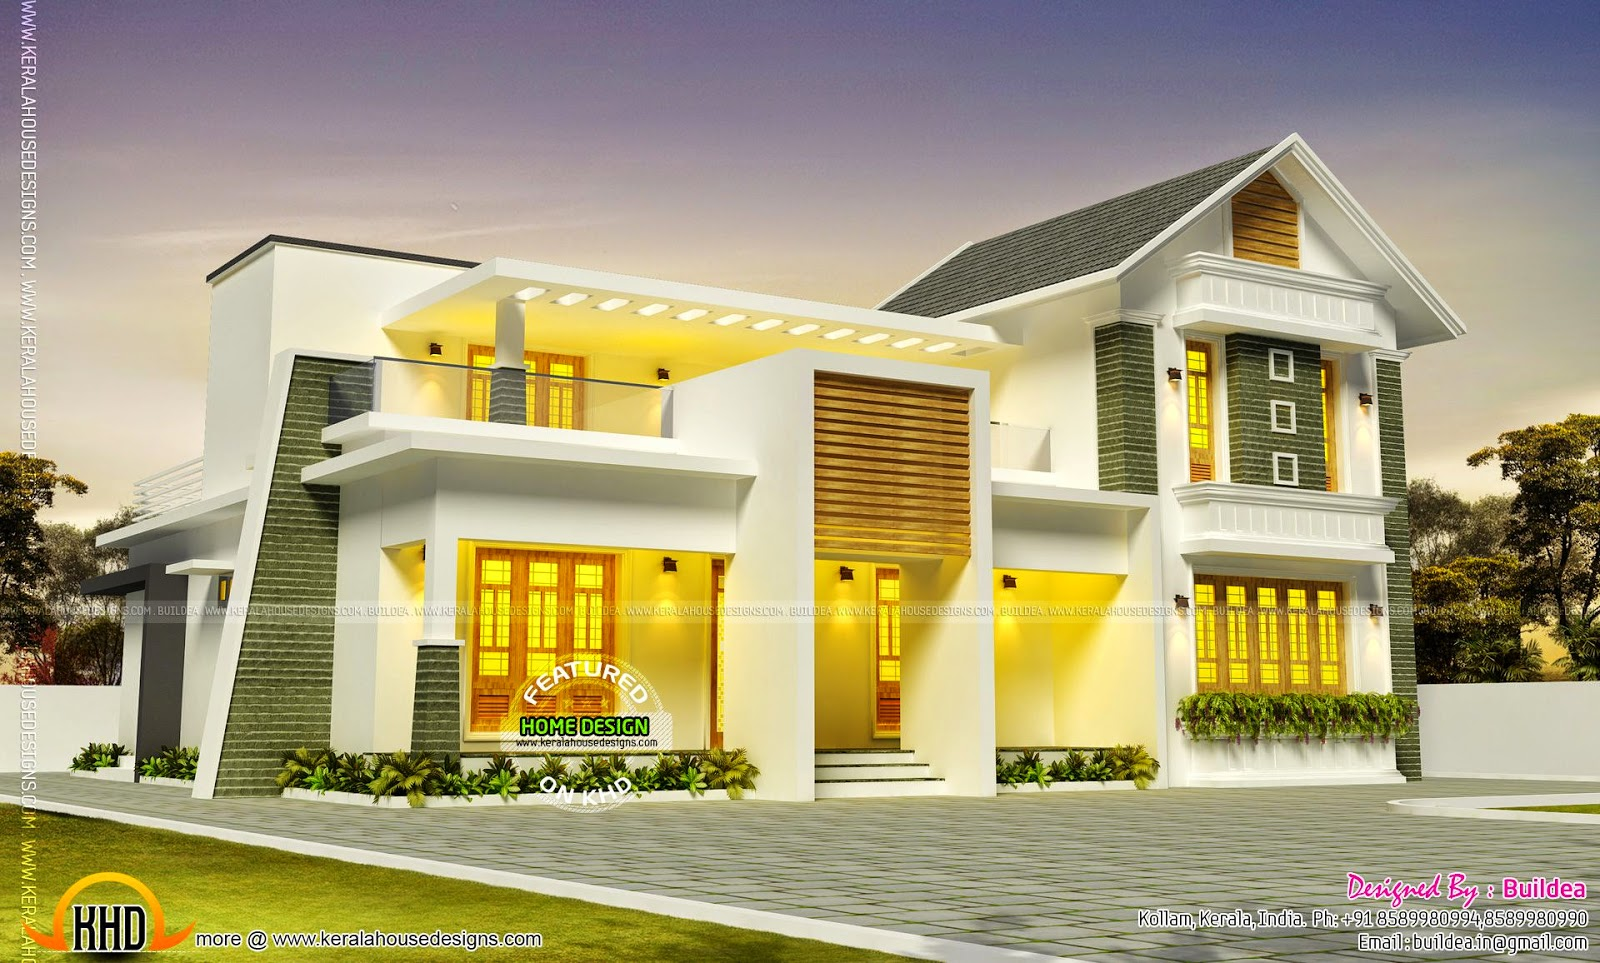 Beautiful house design in kollam kerala home design and floor plans for Beautiful home entrance design